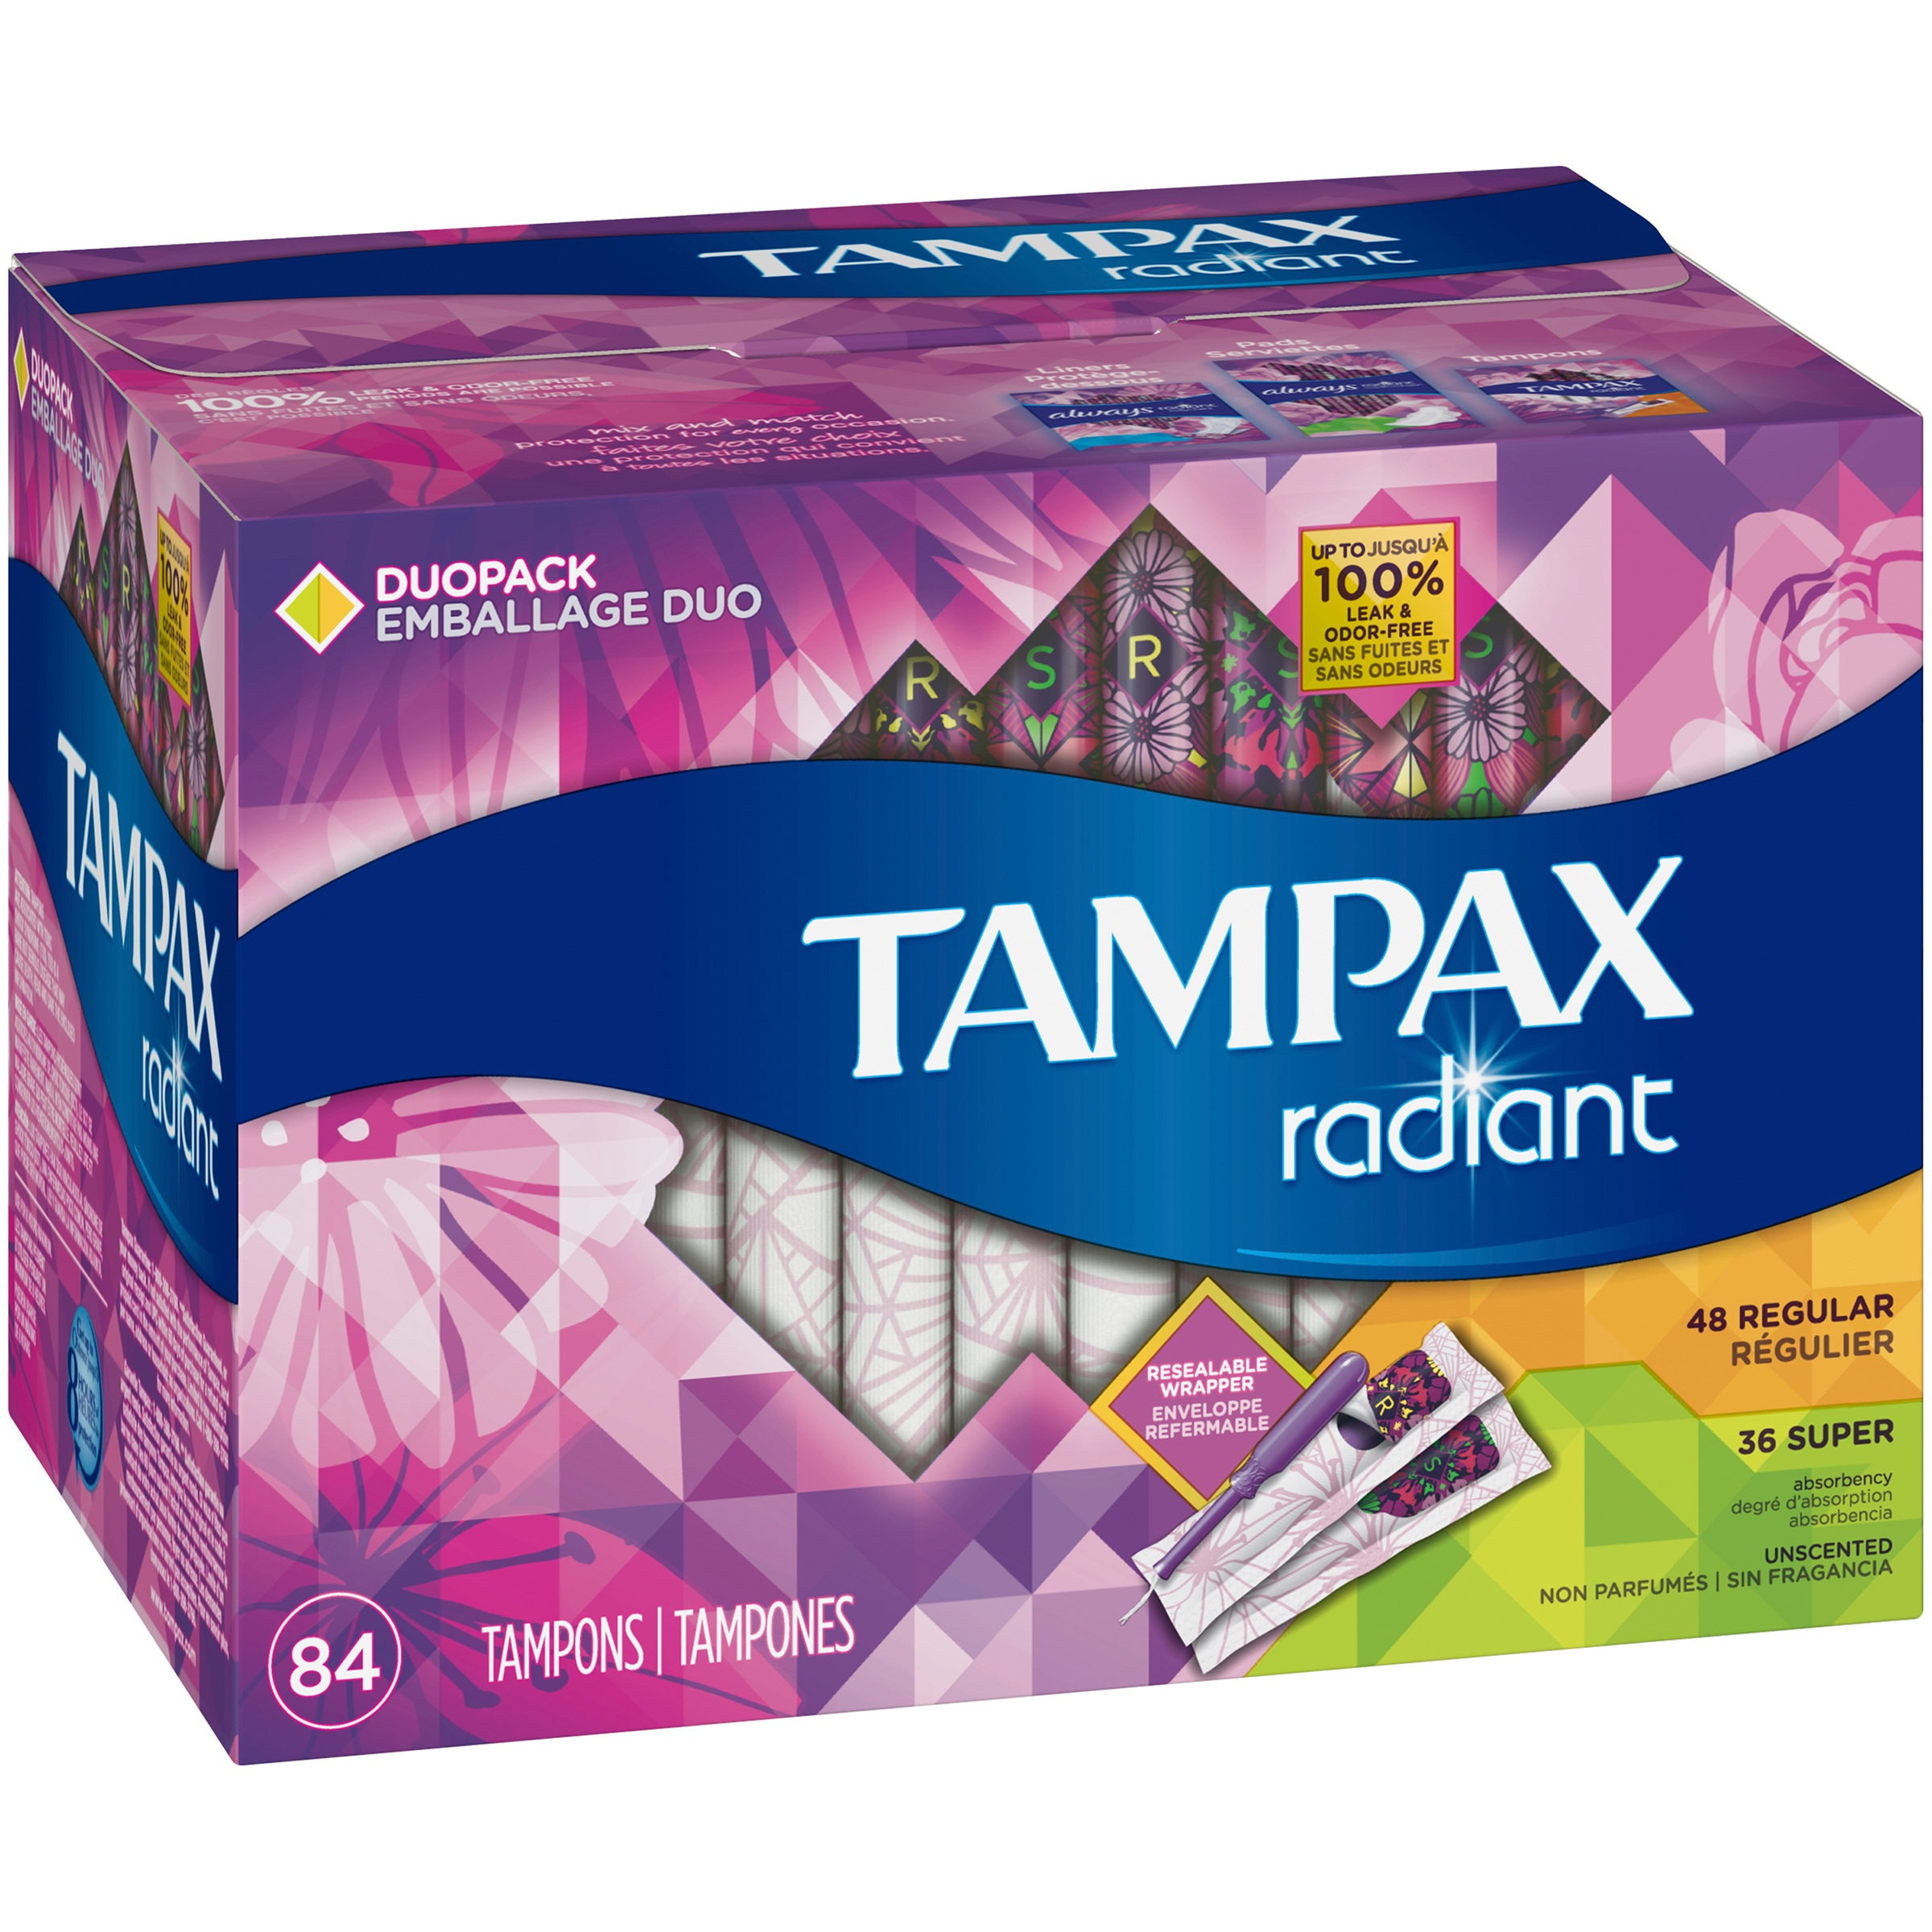 Tampax Radiant Duopack Regular/Super Plastic Unscented Tampons 84 ct Box